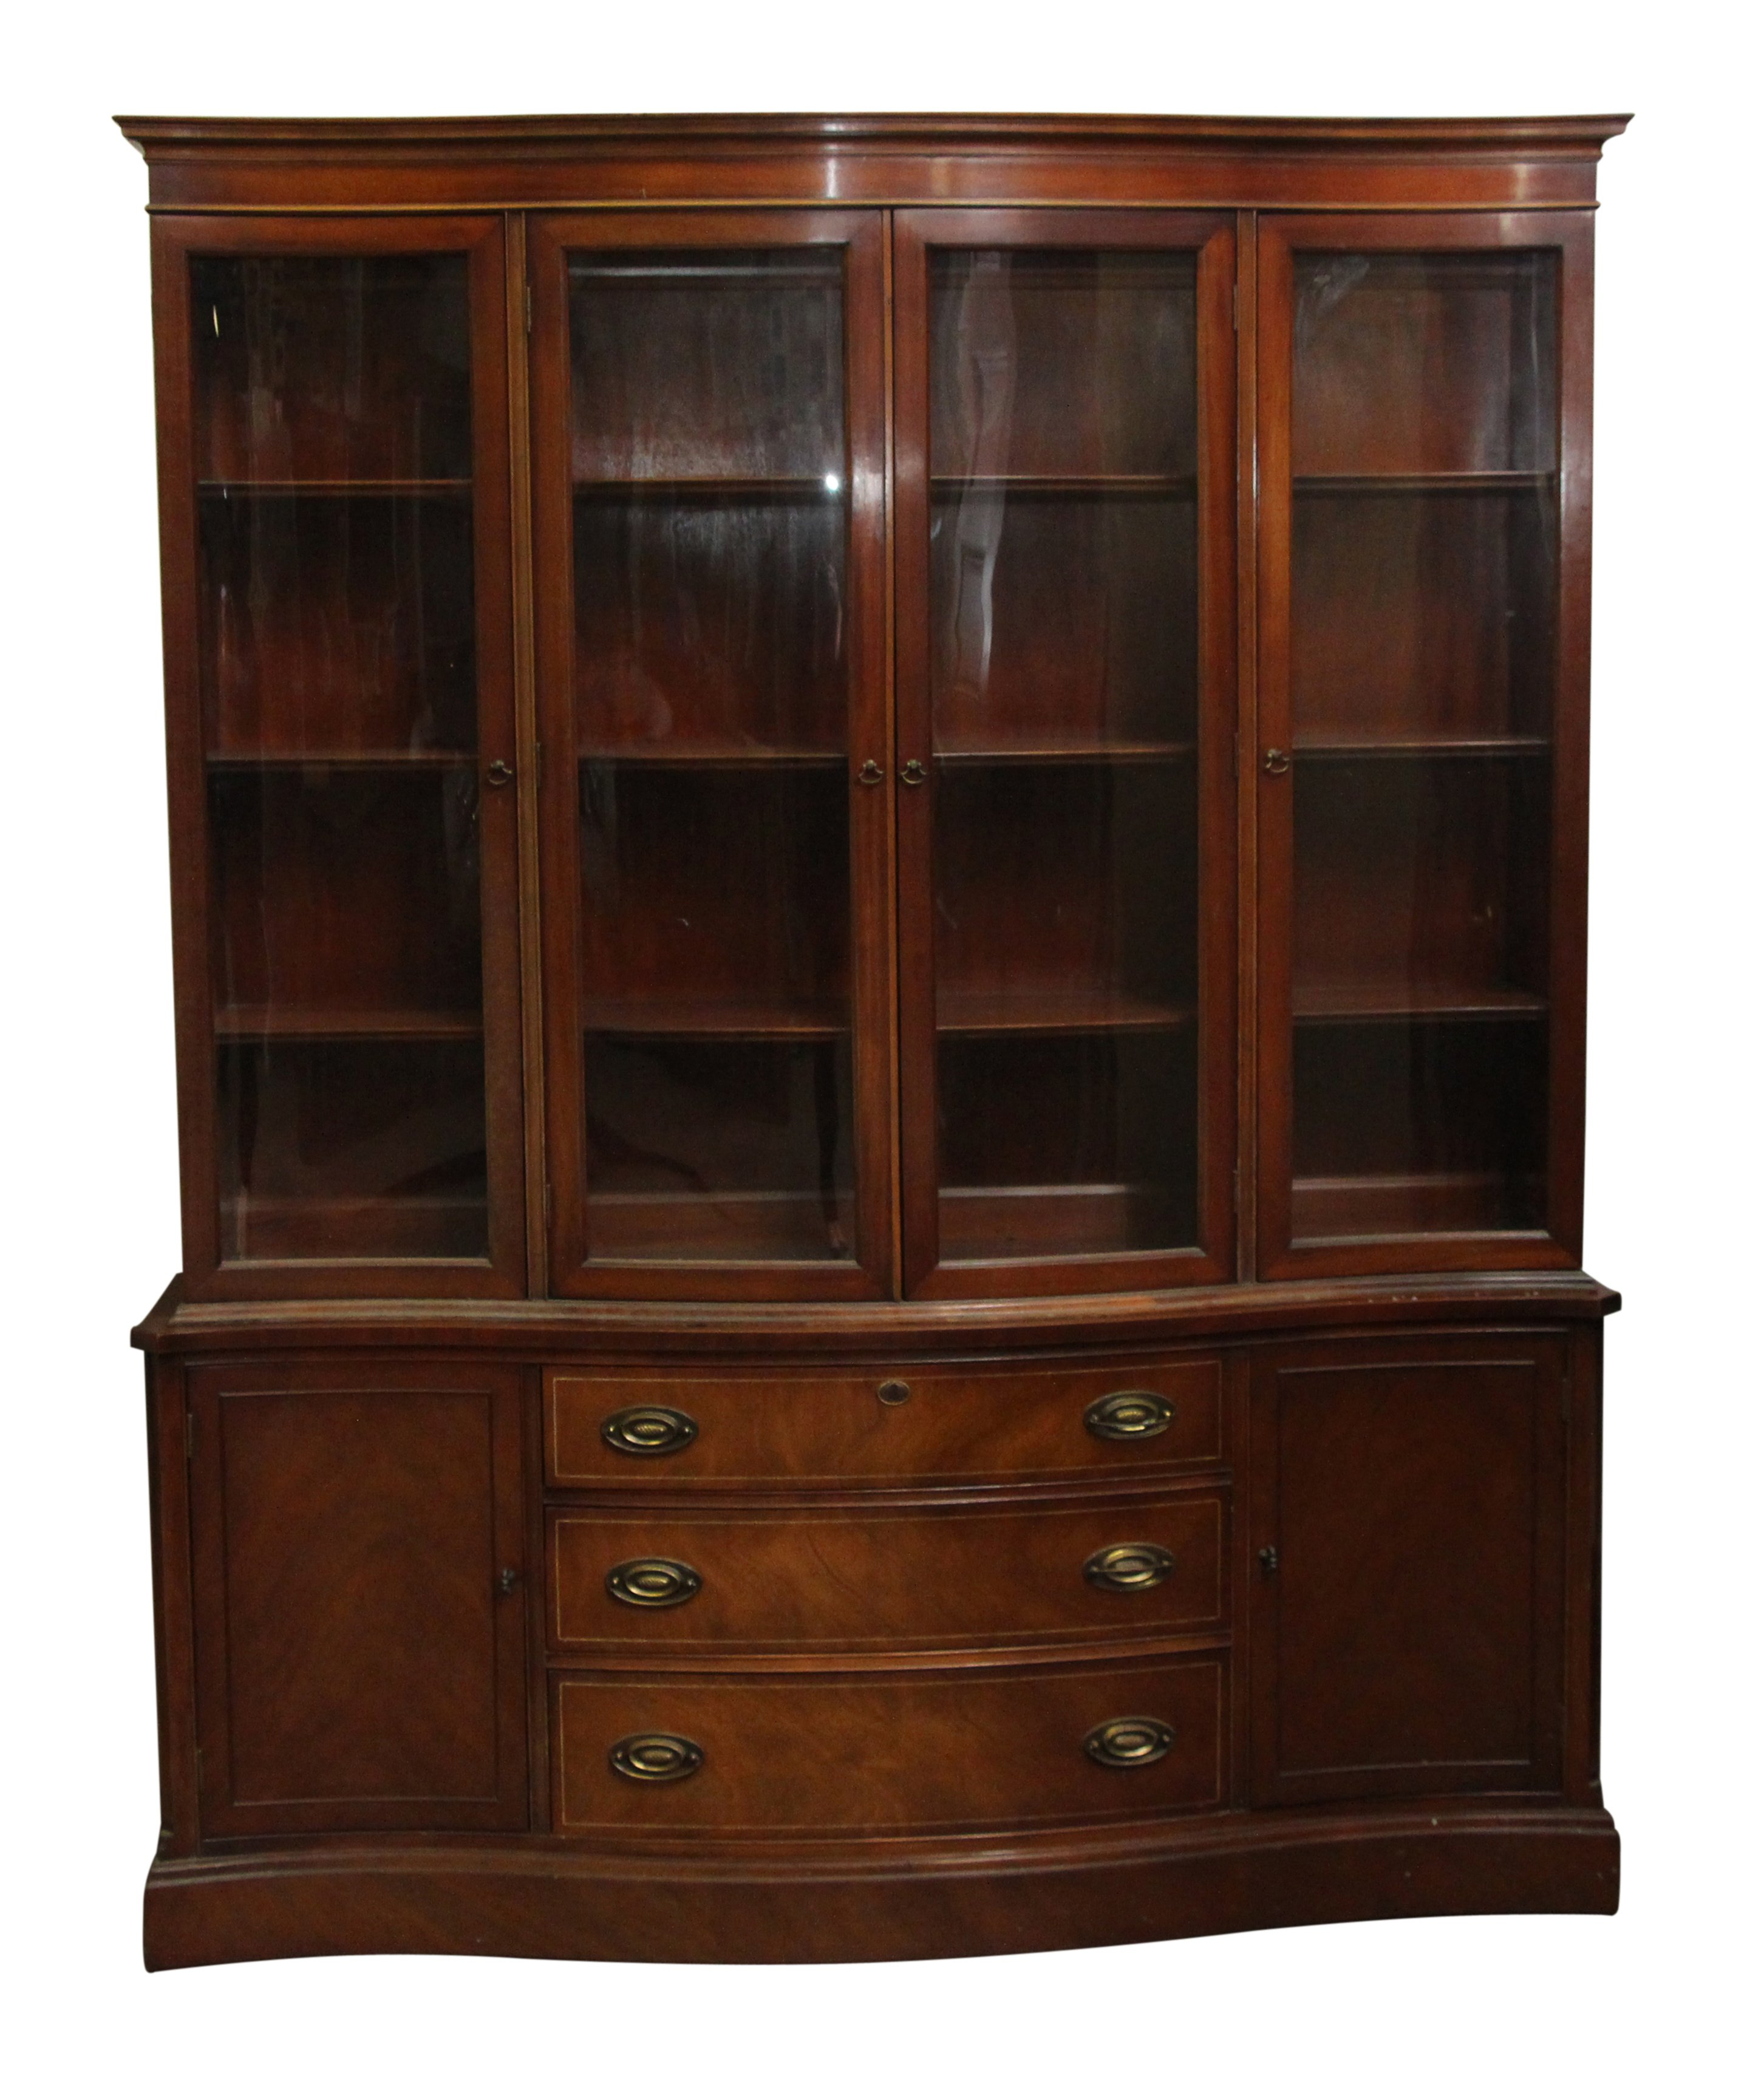 Vintage Curved Glass Front Mahogany China Cabinet